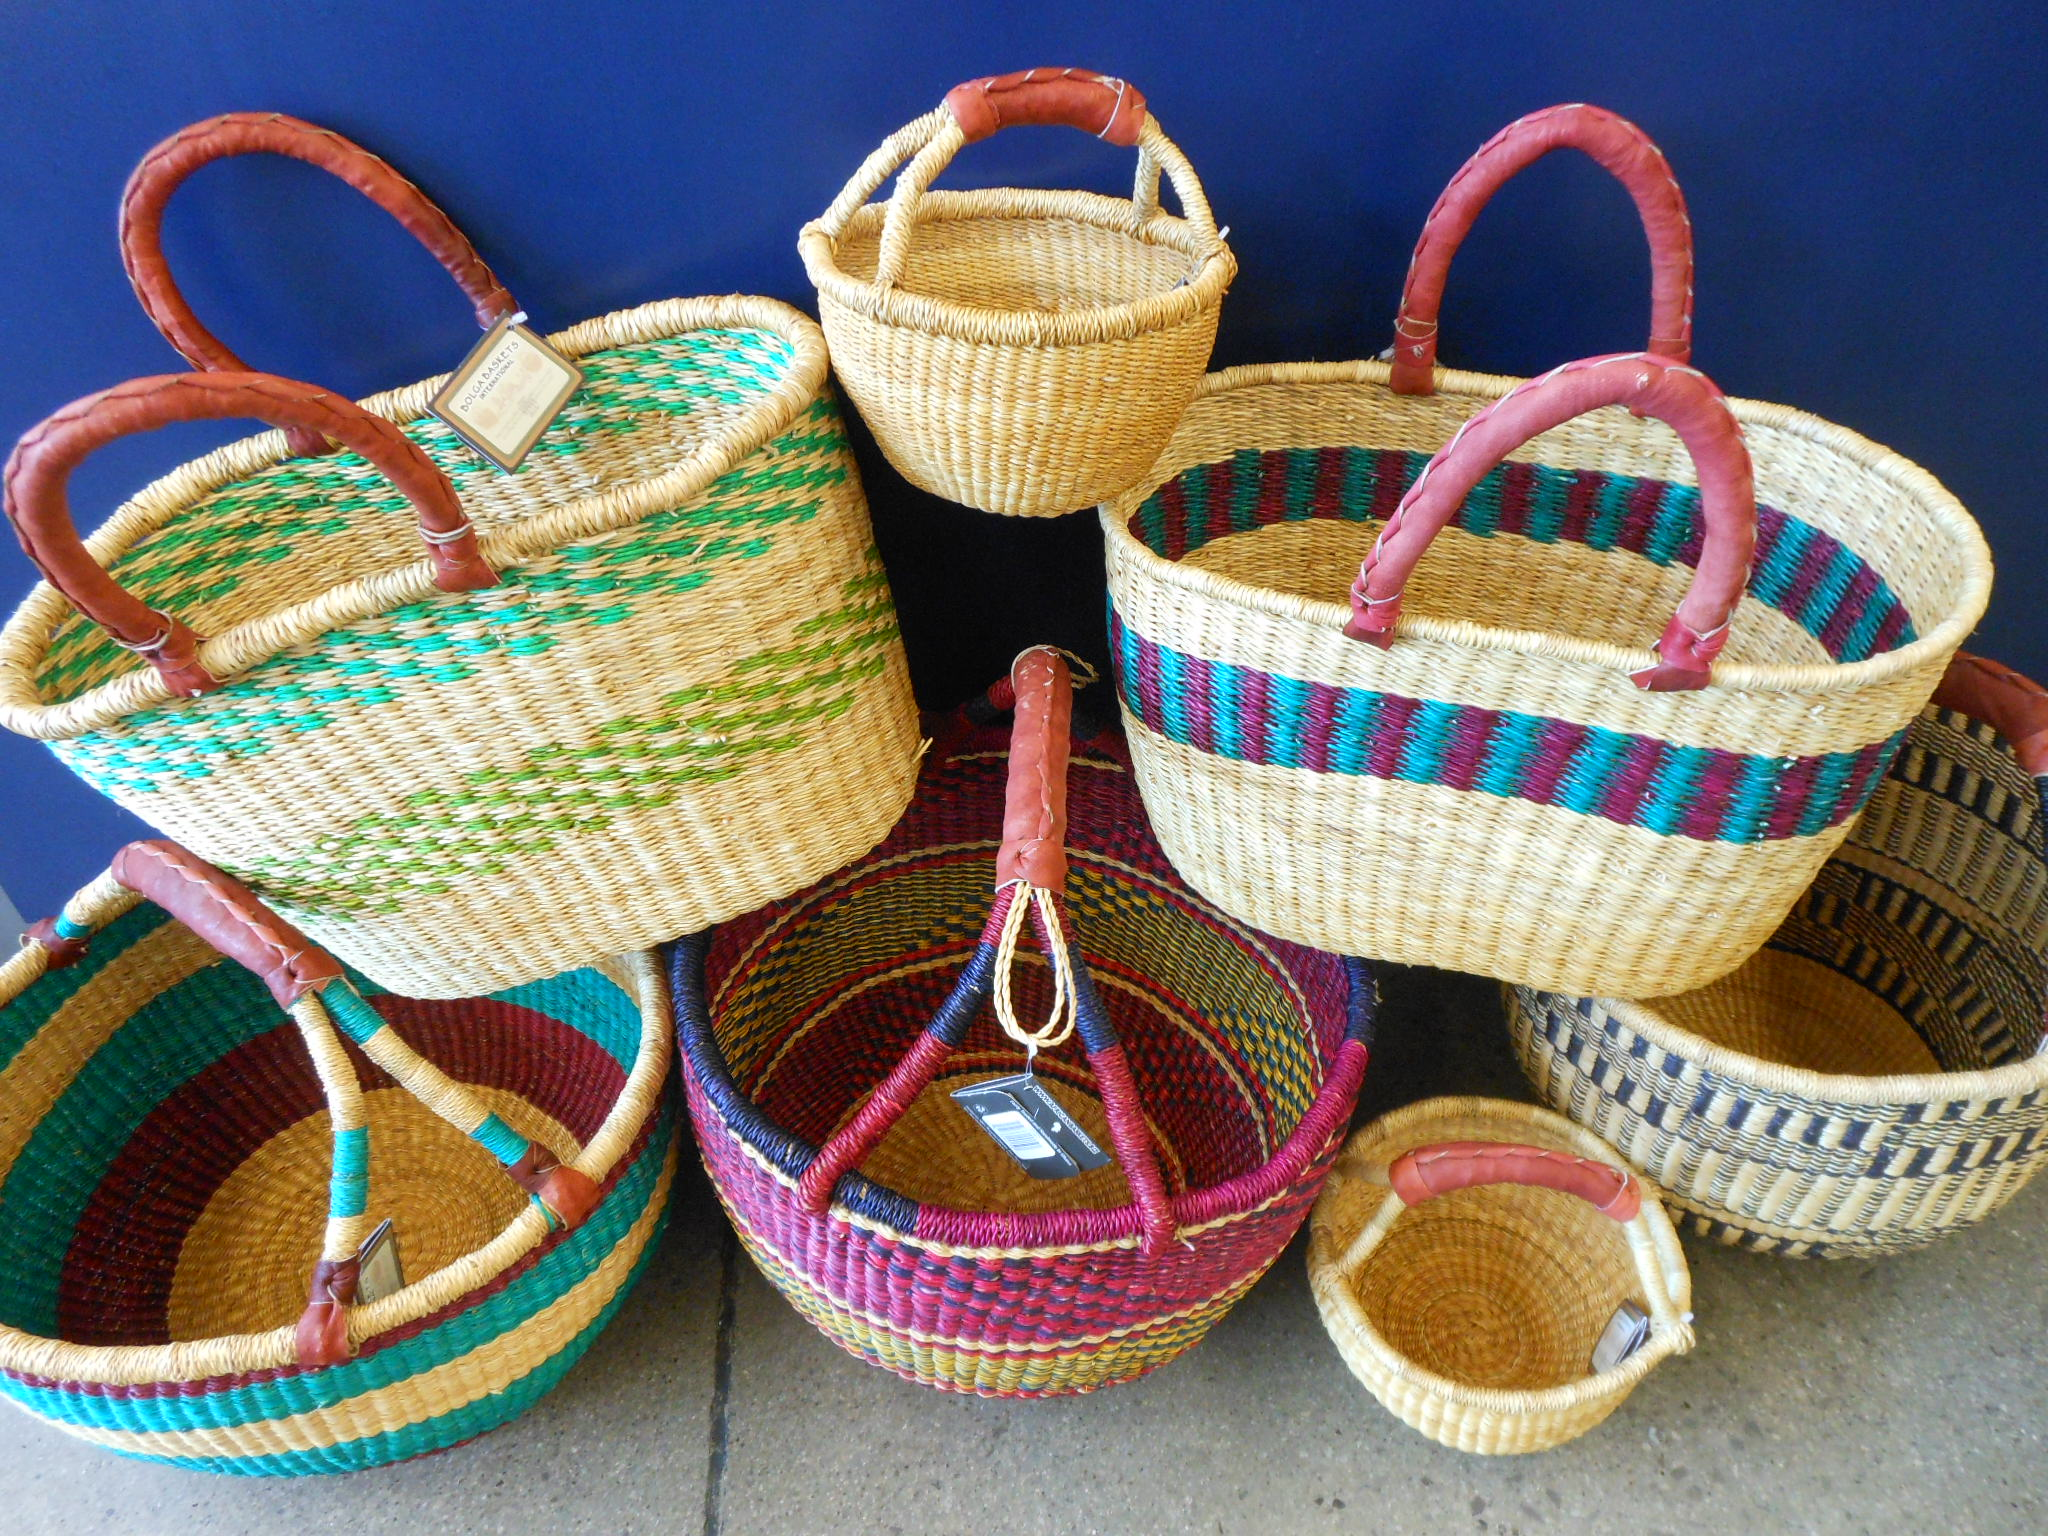 Basket Weaving Supplies Uk : Fair trade african bolga baskets three rivers market